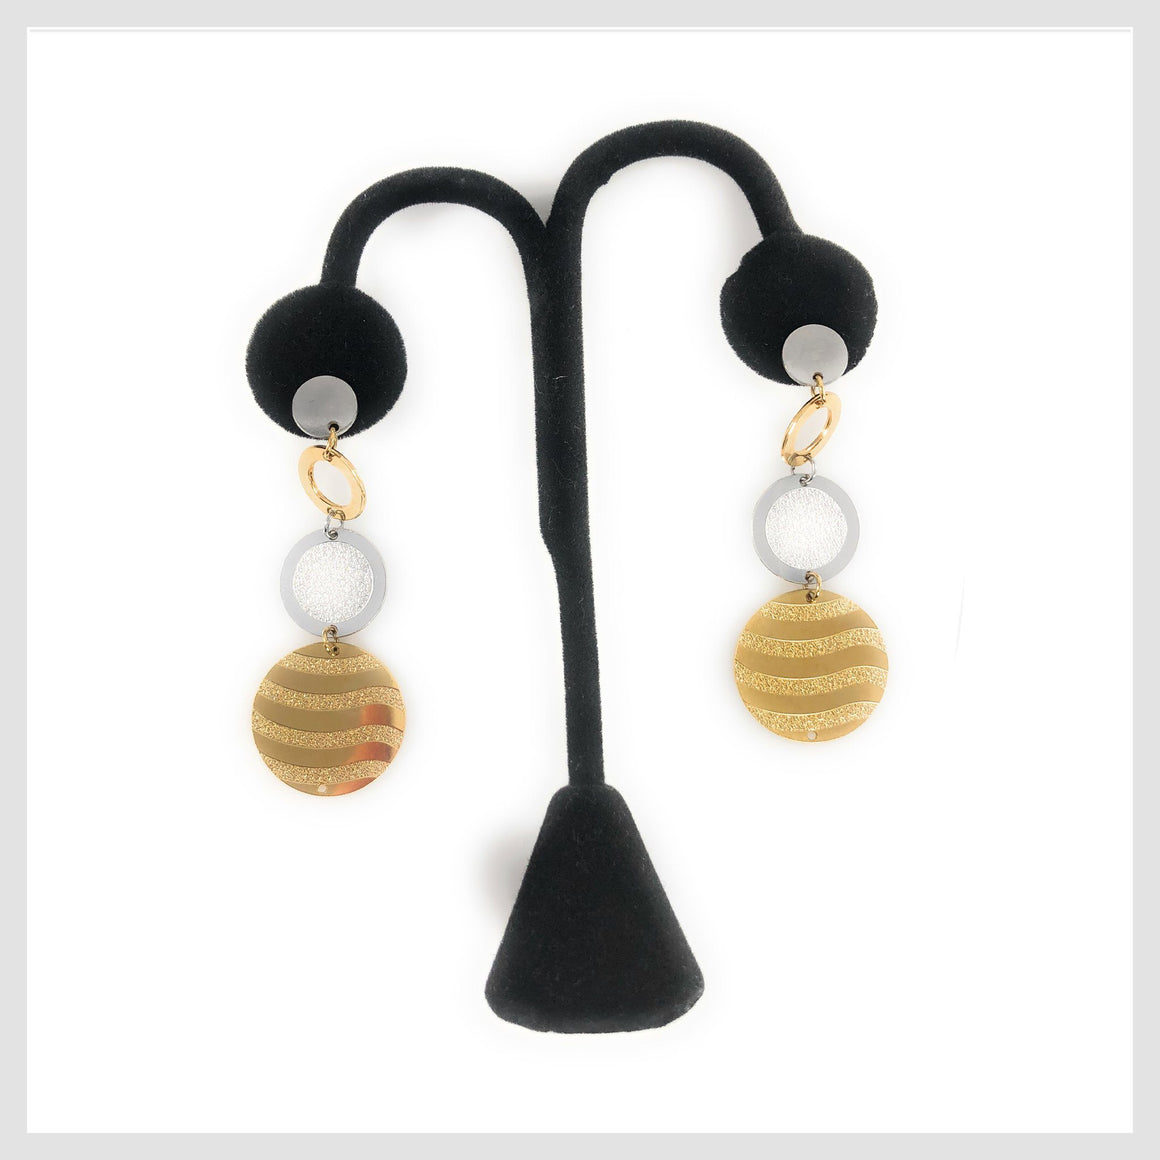 Stainless Steel Earrings Multi-tone Circle Drop